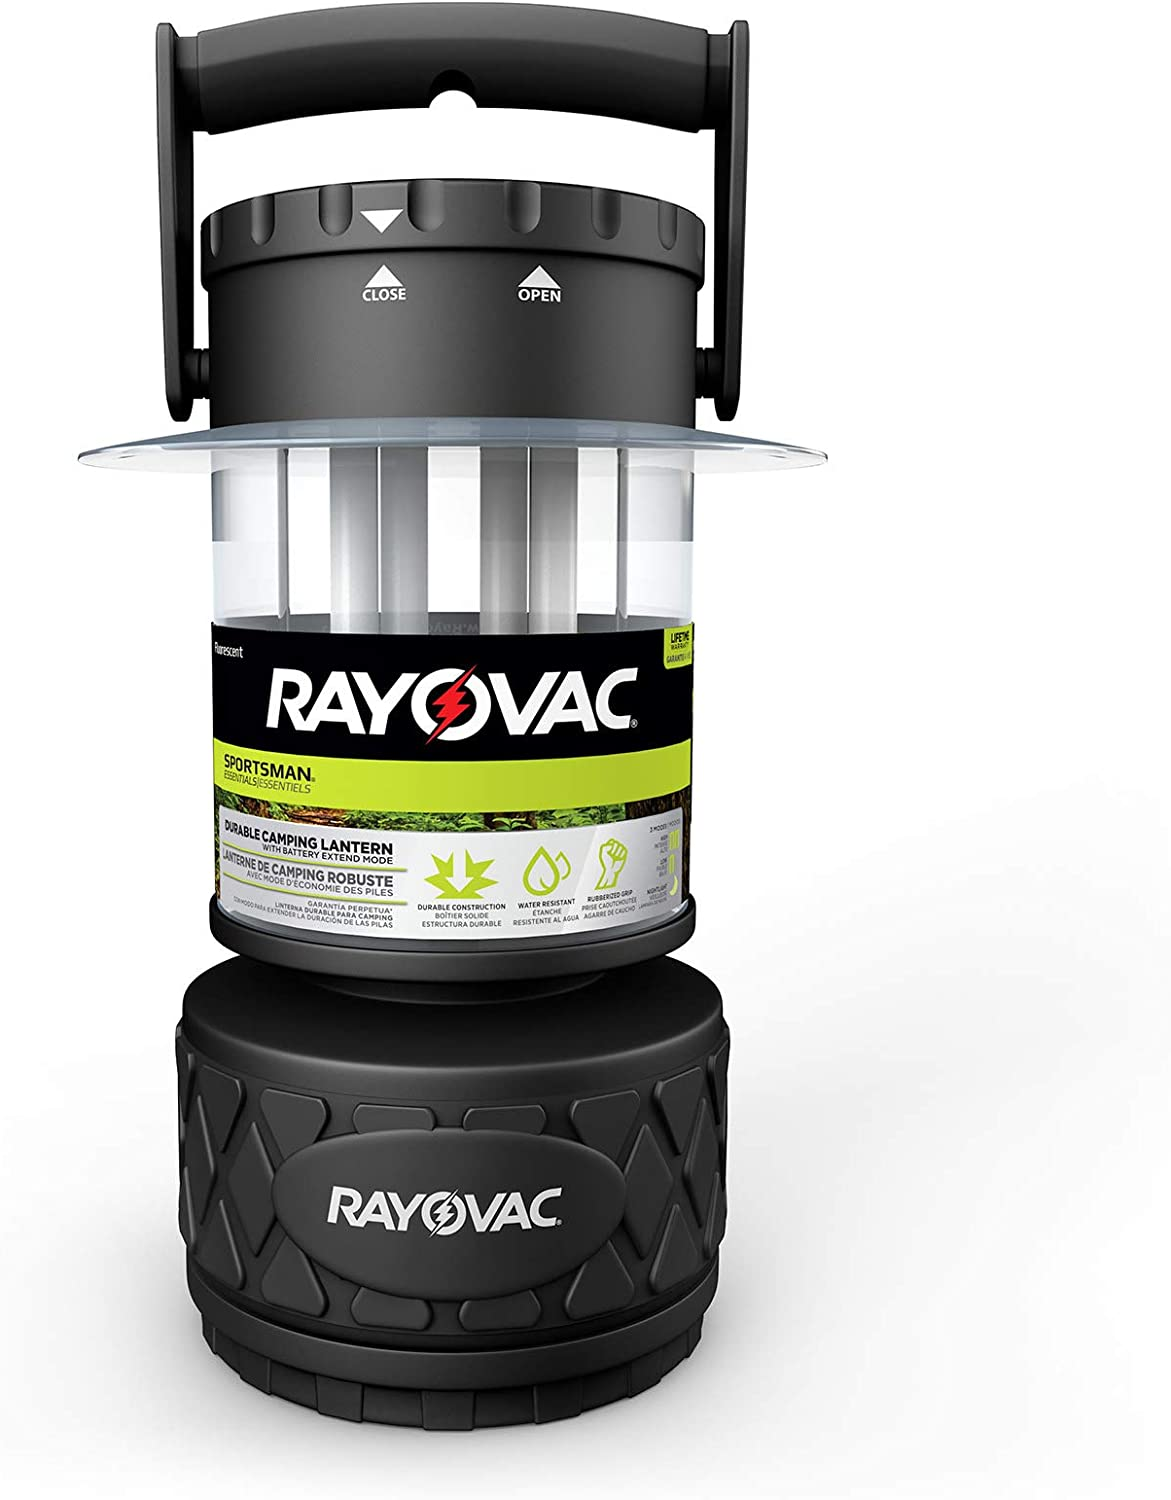 Rayovac Sportsman LED Camping Lantern Flashlight, 300 Lumens Battery Powered LED Lanterns for Hurricane Supplies, Survival Kit, Camping Accessories